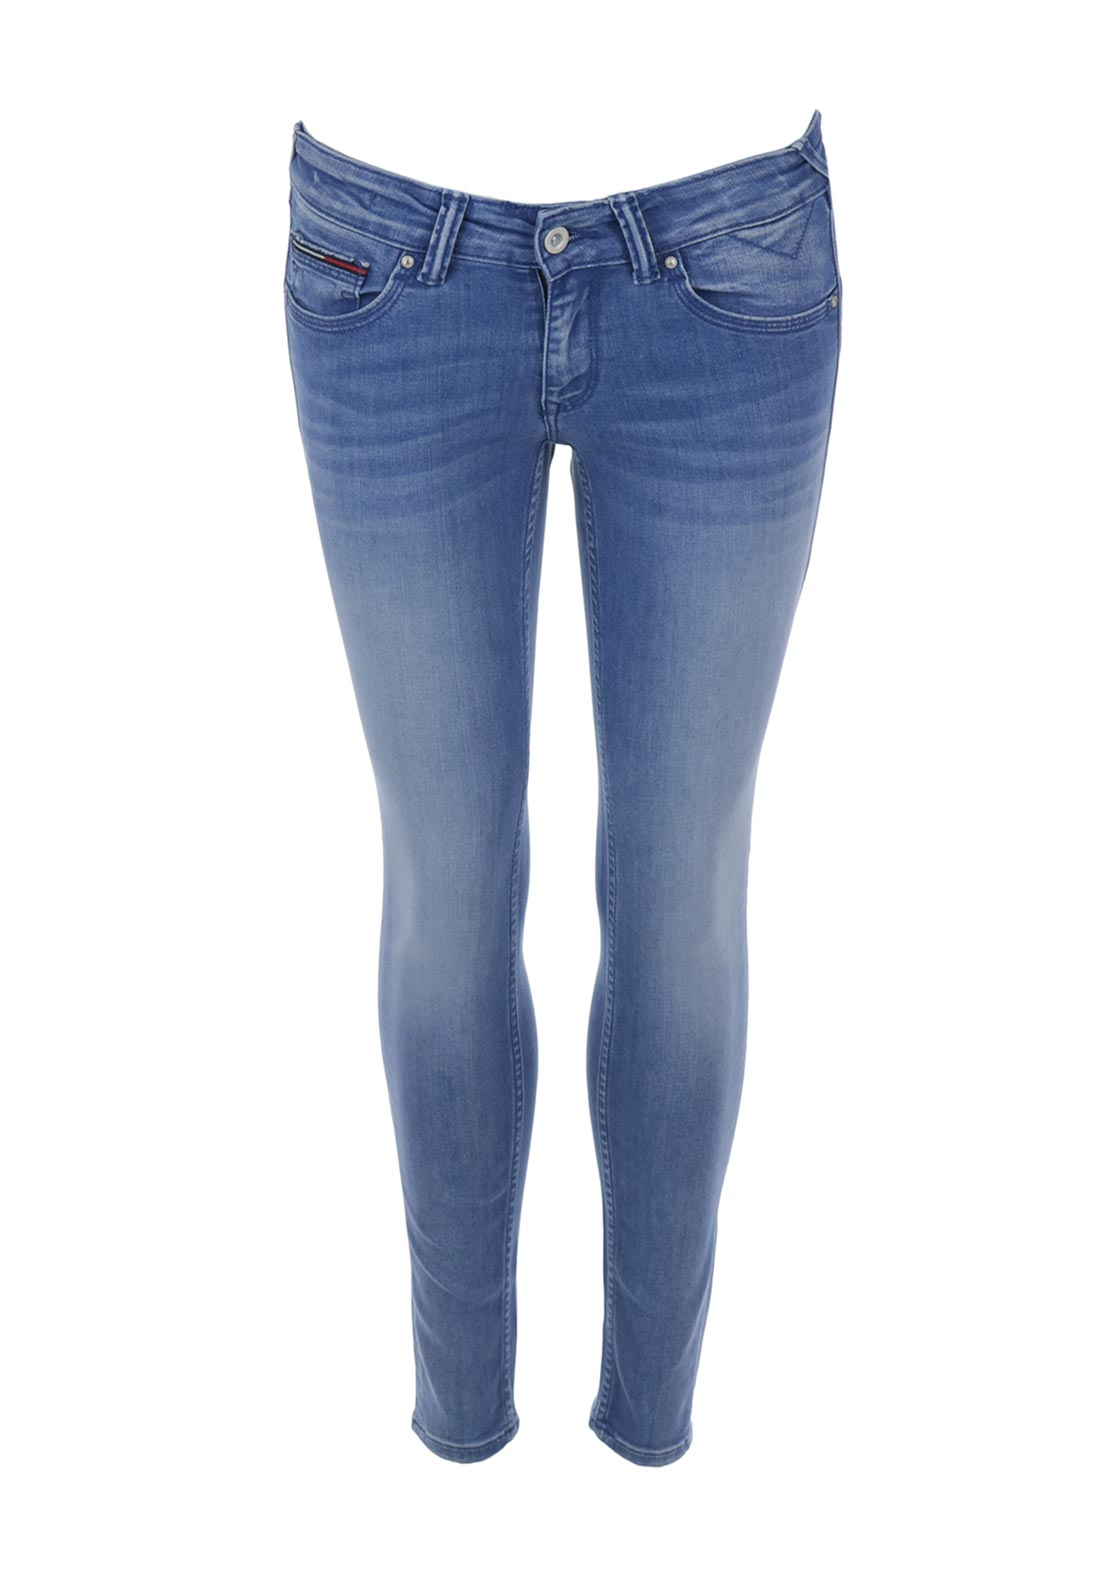 Tommy Hilfiger Sophie Low Rise 7/8 Skinny Jeans, Light Blue Denim